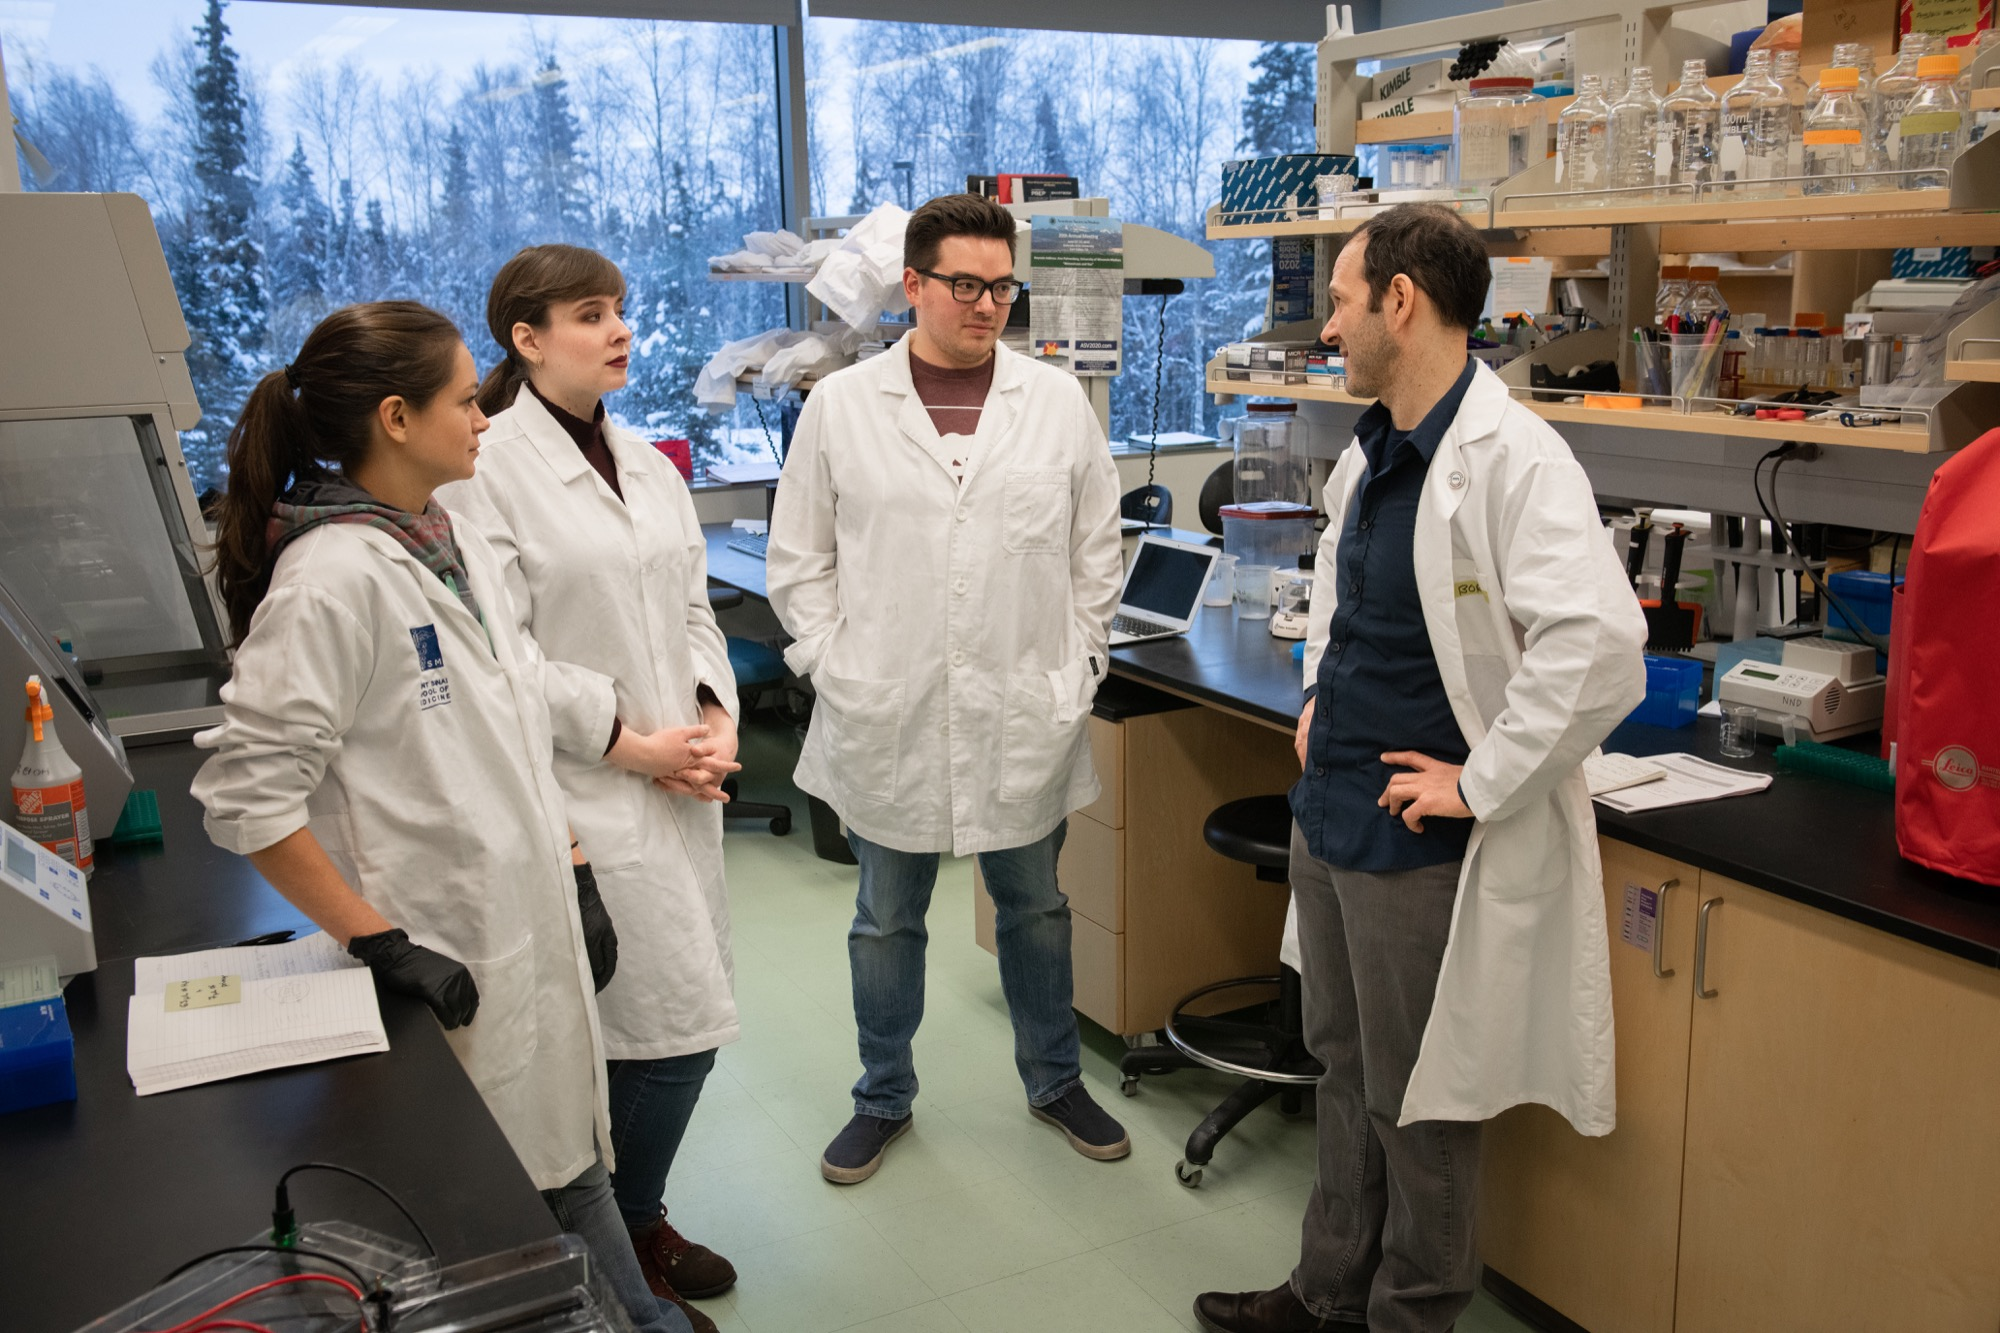 Four researchers discussing coronavirus